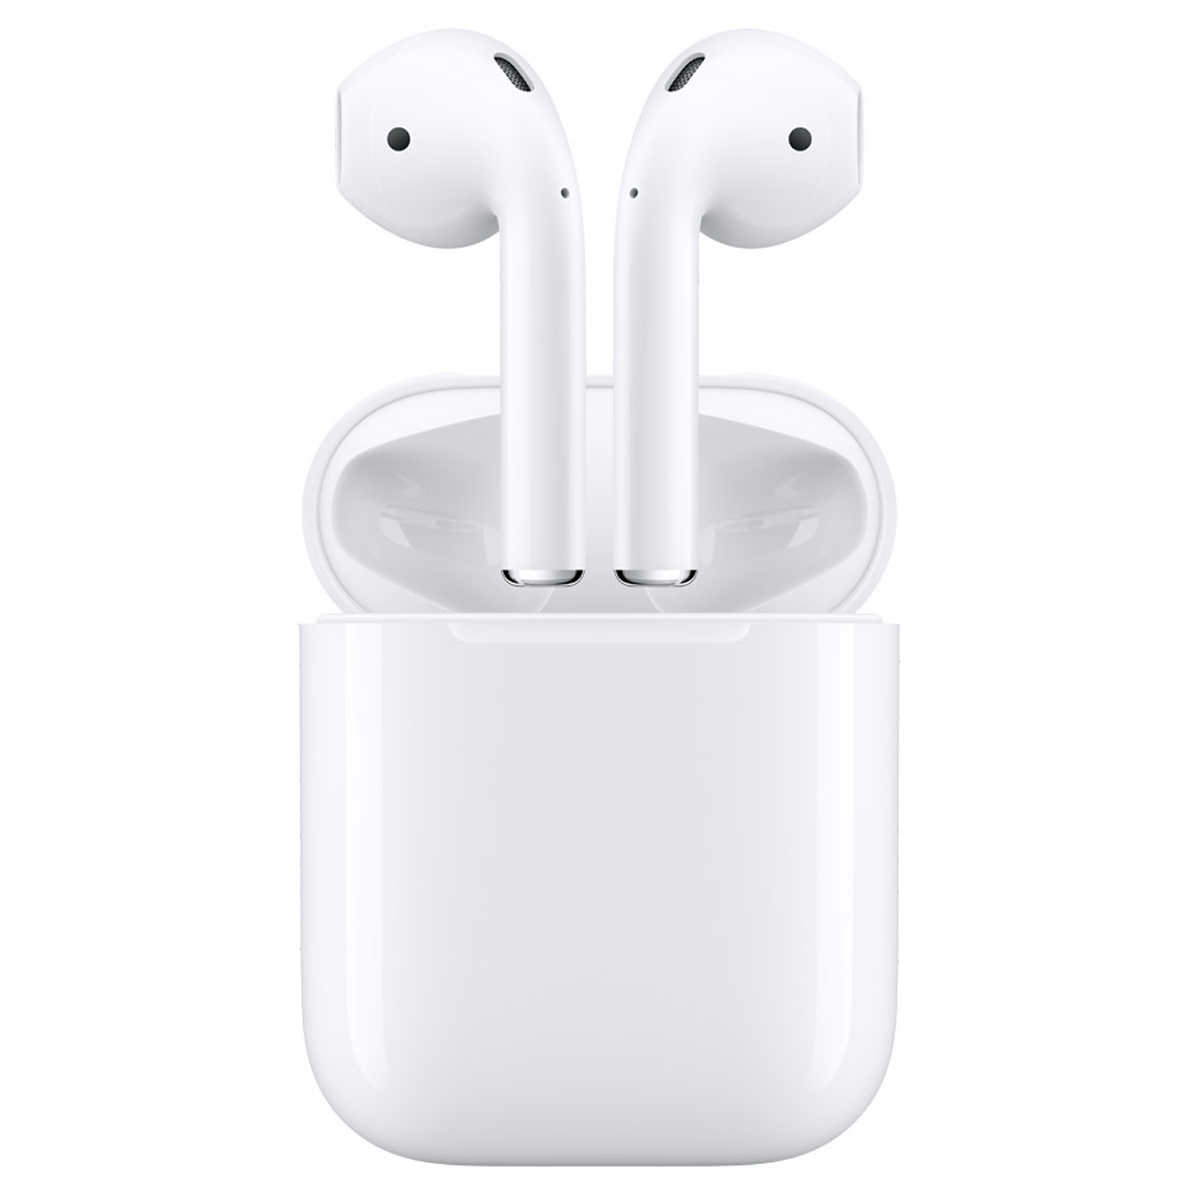 APPLEAirPods Gen2 with Charging Case (Latest Model A2032) - White